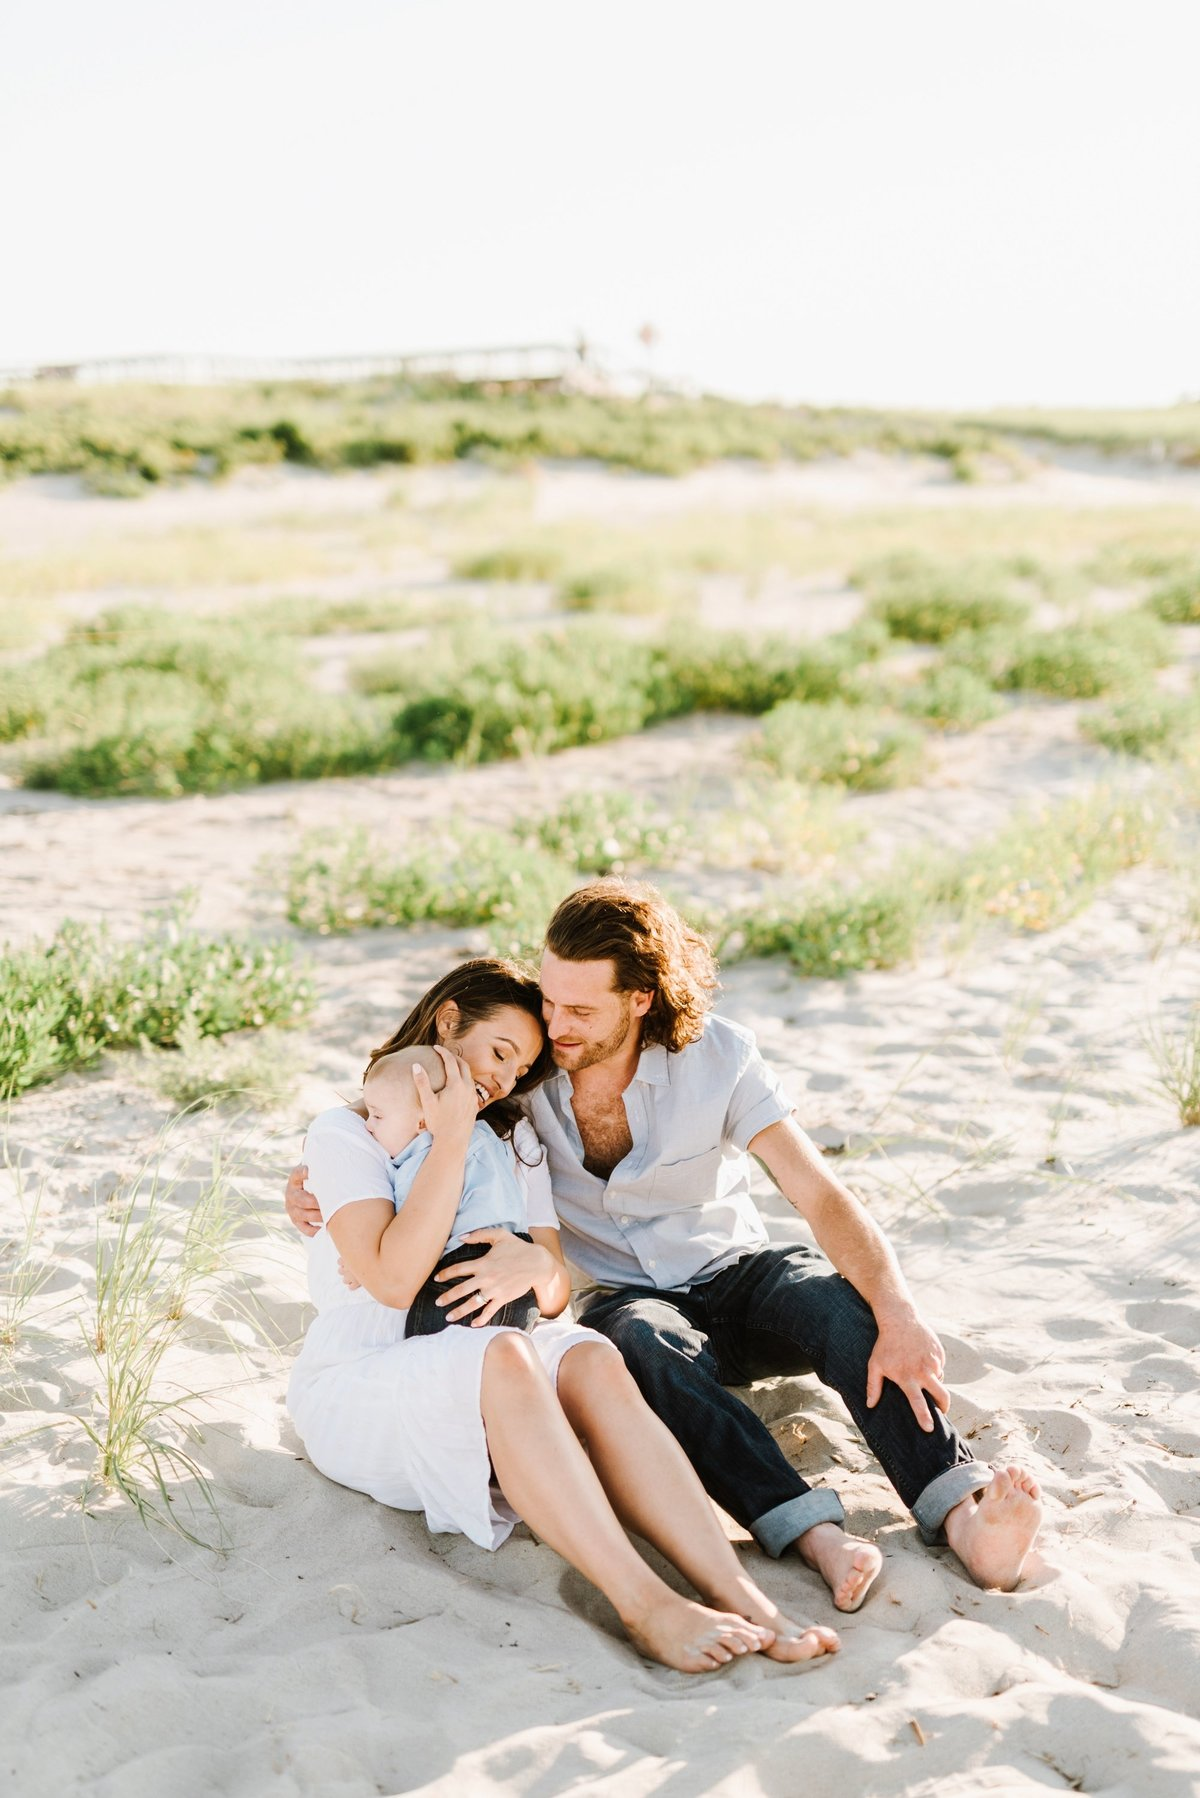 crane-beach-family-session-boston-lifestyle-newborn-photographer-photo_0001